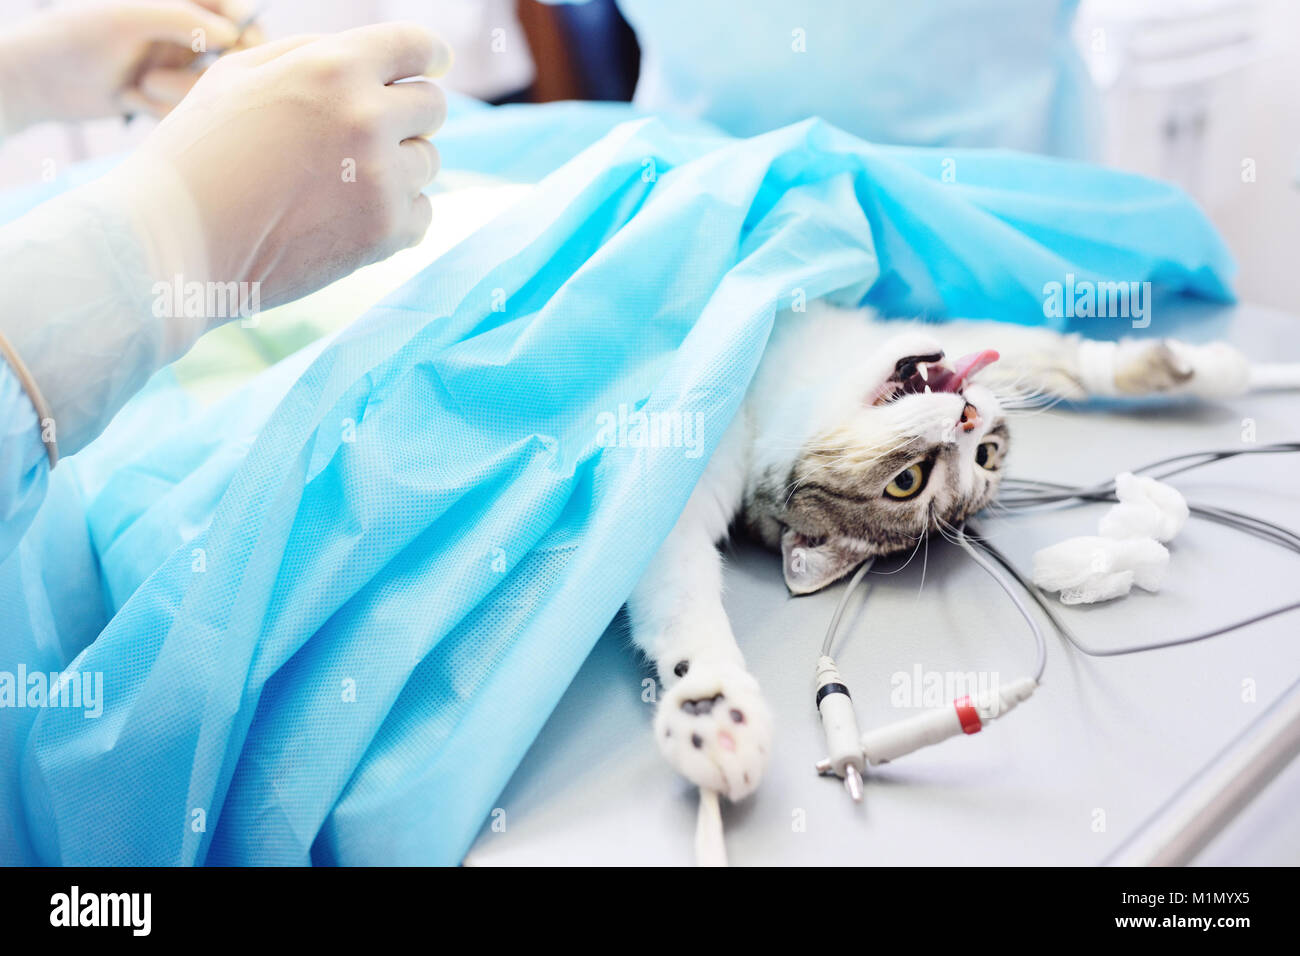 cat on the operating table Stock Photo